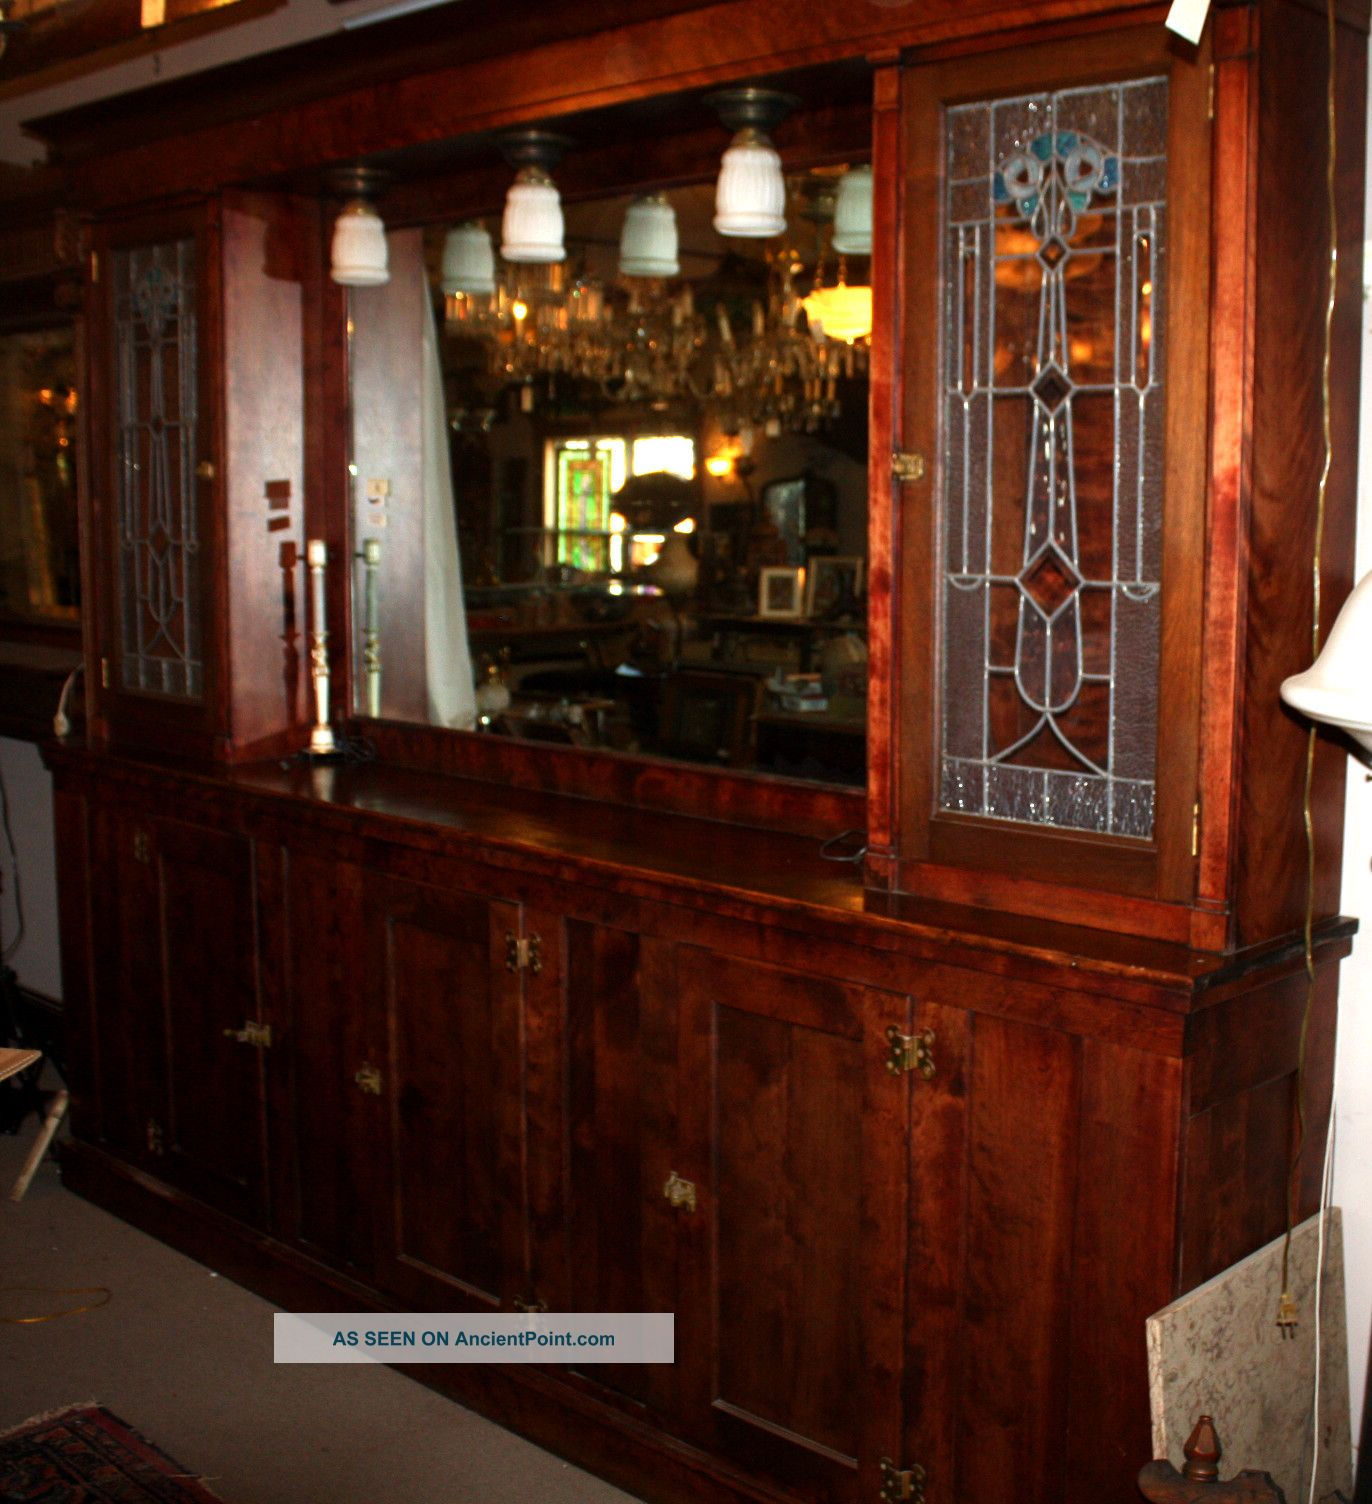 Antique Arts And Crafts Leaded Stained Glass Back Bar Circa 1900 Mohogony Finish 1900-1950 photo